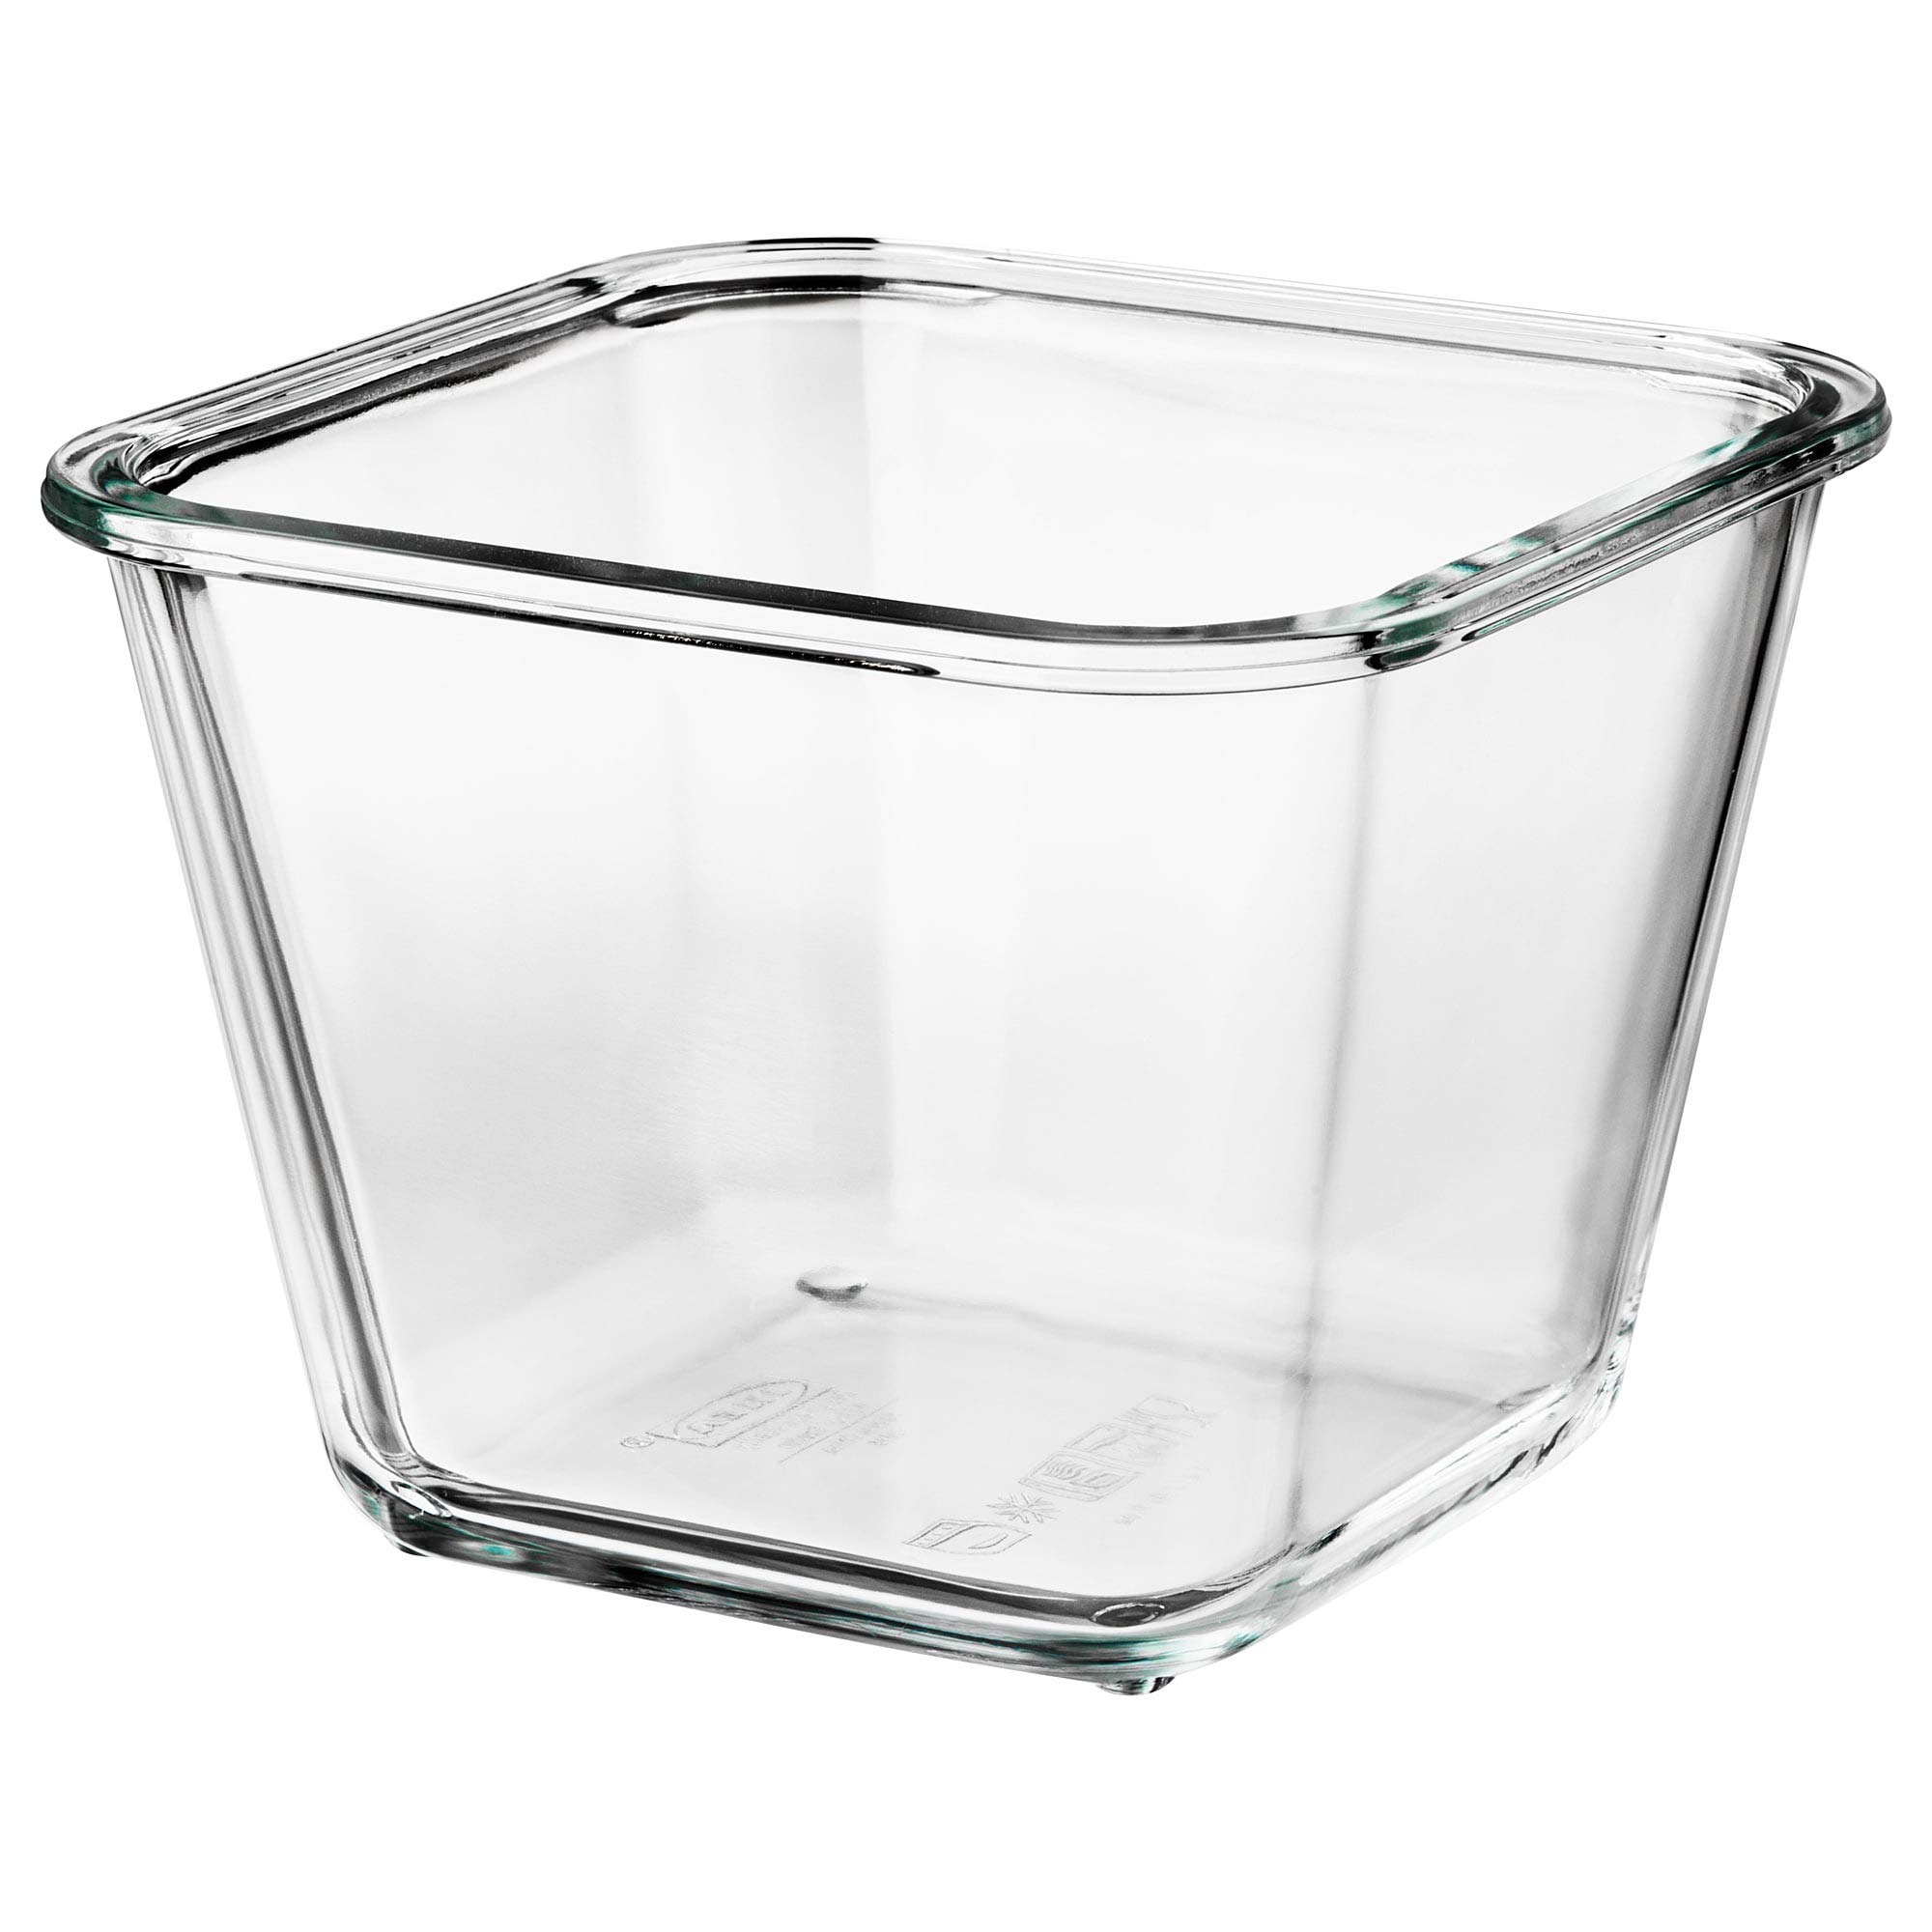 Ikea Food Container Glass Oven